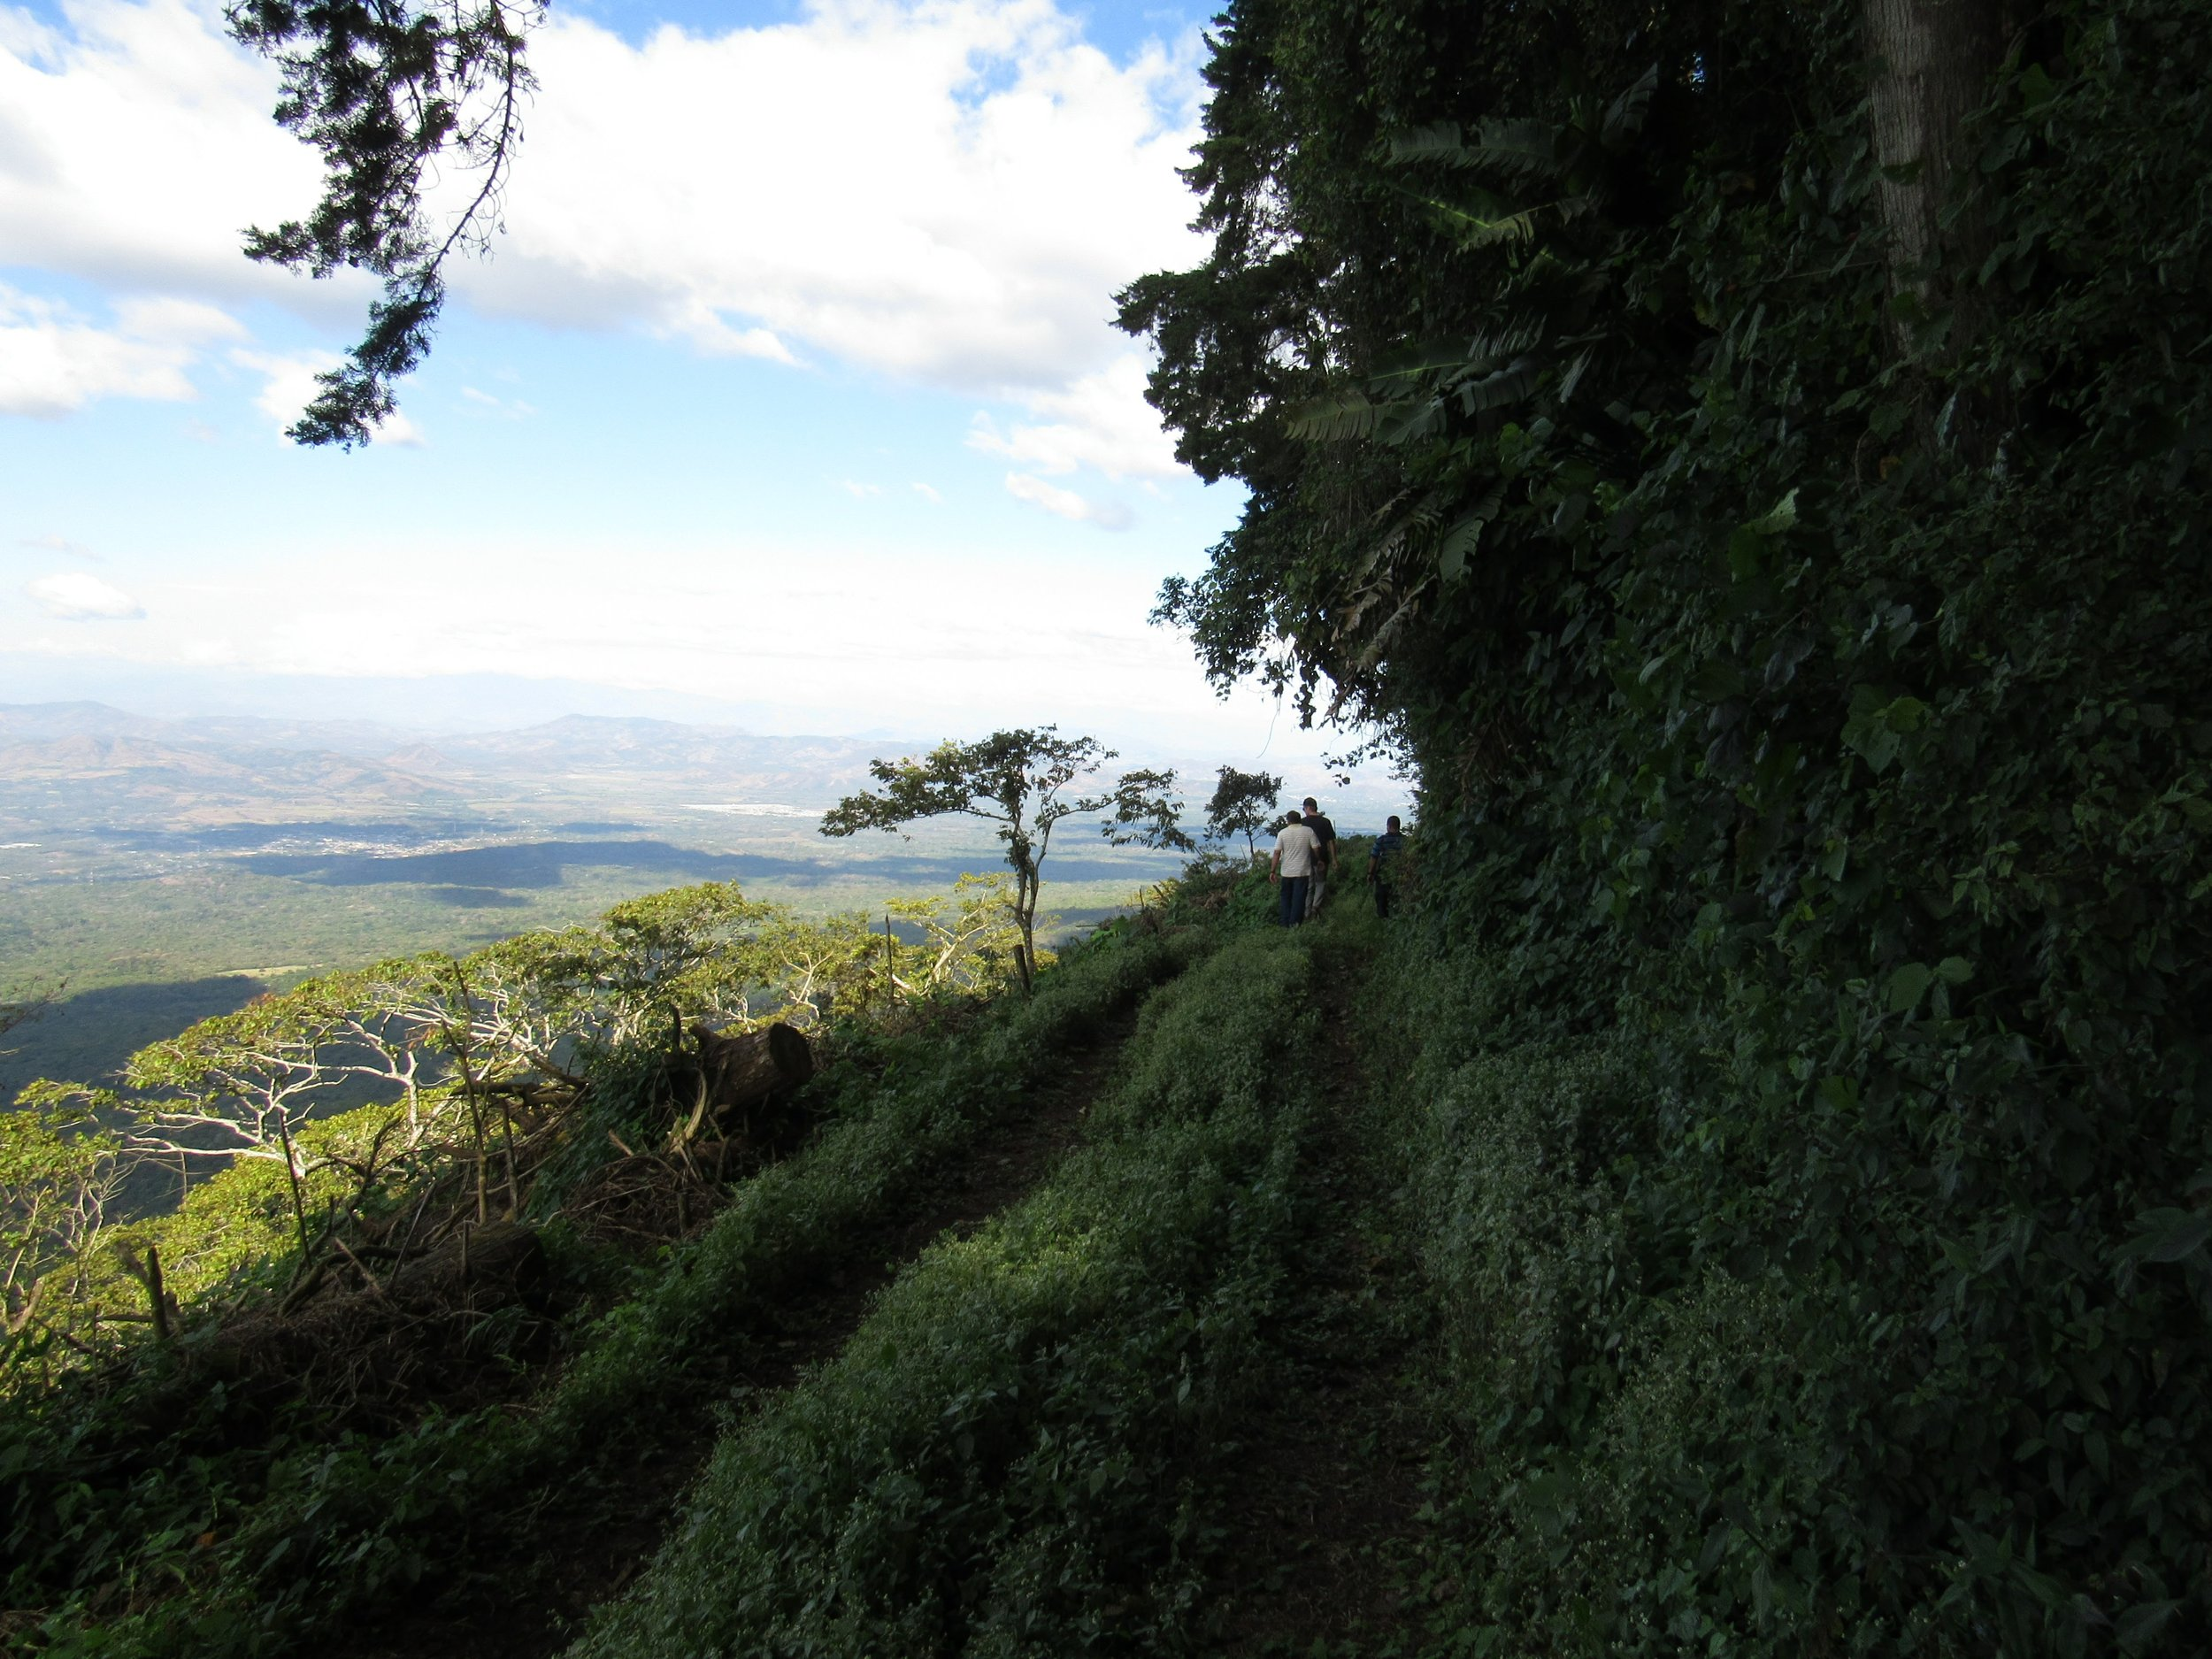 The road up to Finca Las Delicias hugs the side of the mountain and goes down at a pretty steep angle.